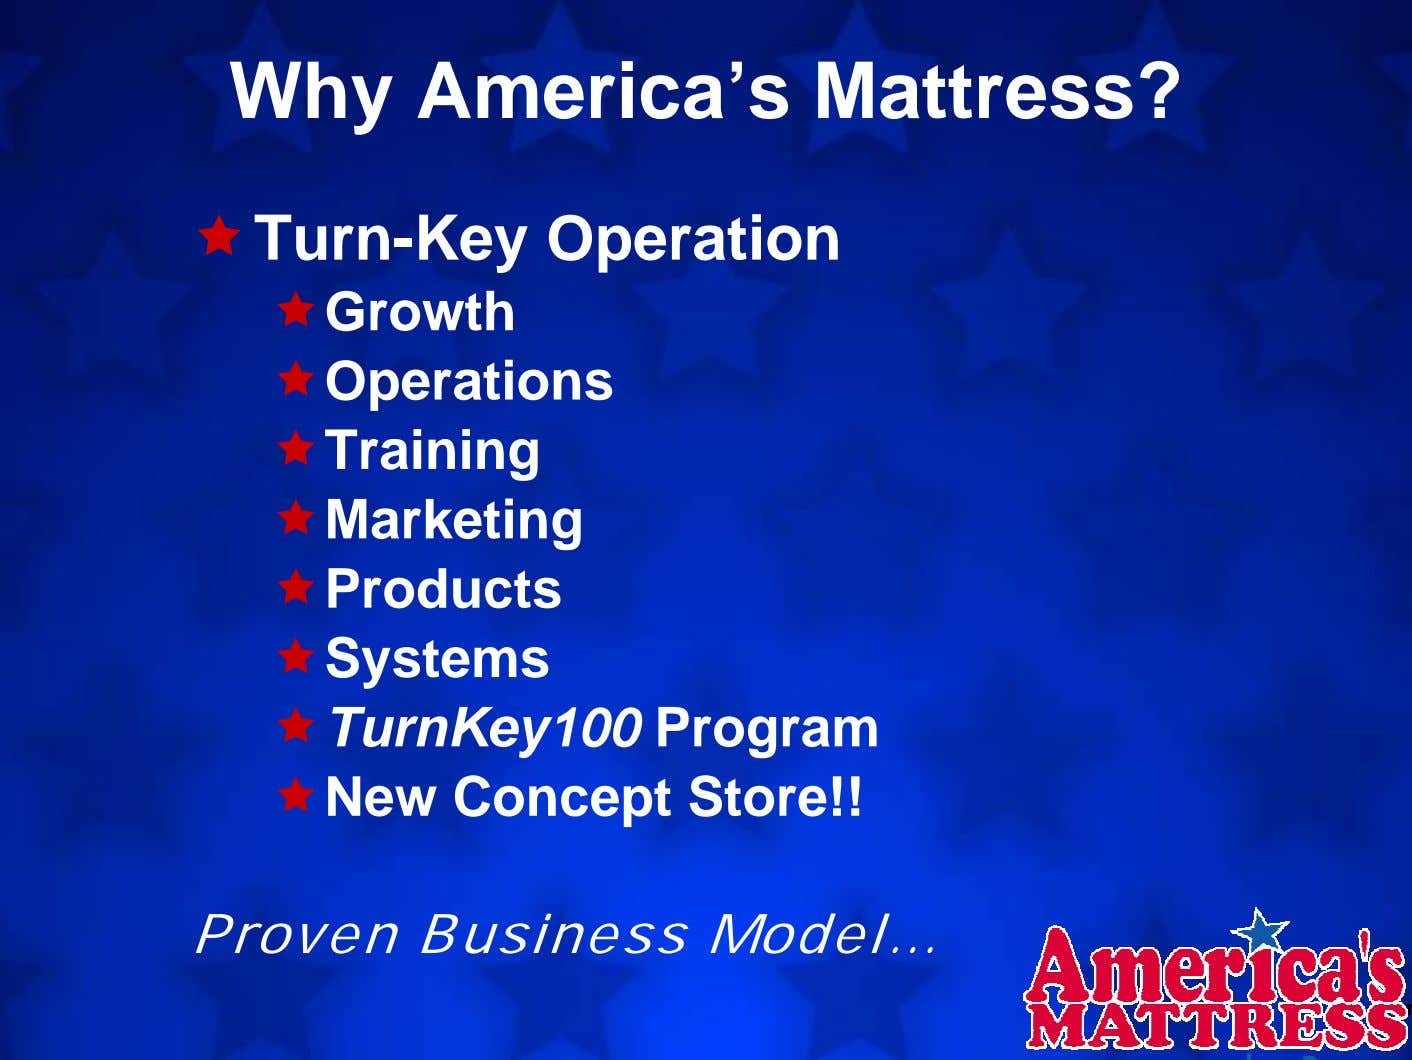 Why America's Mattress? Turn-Key Operation Growth Operations Training Marketing Products Systems